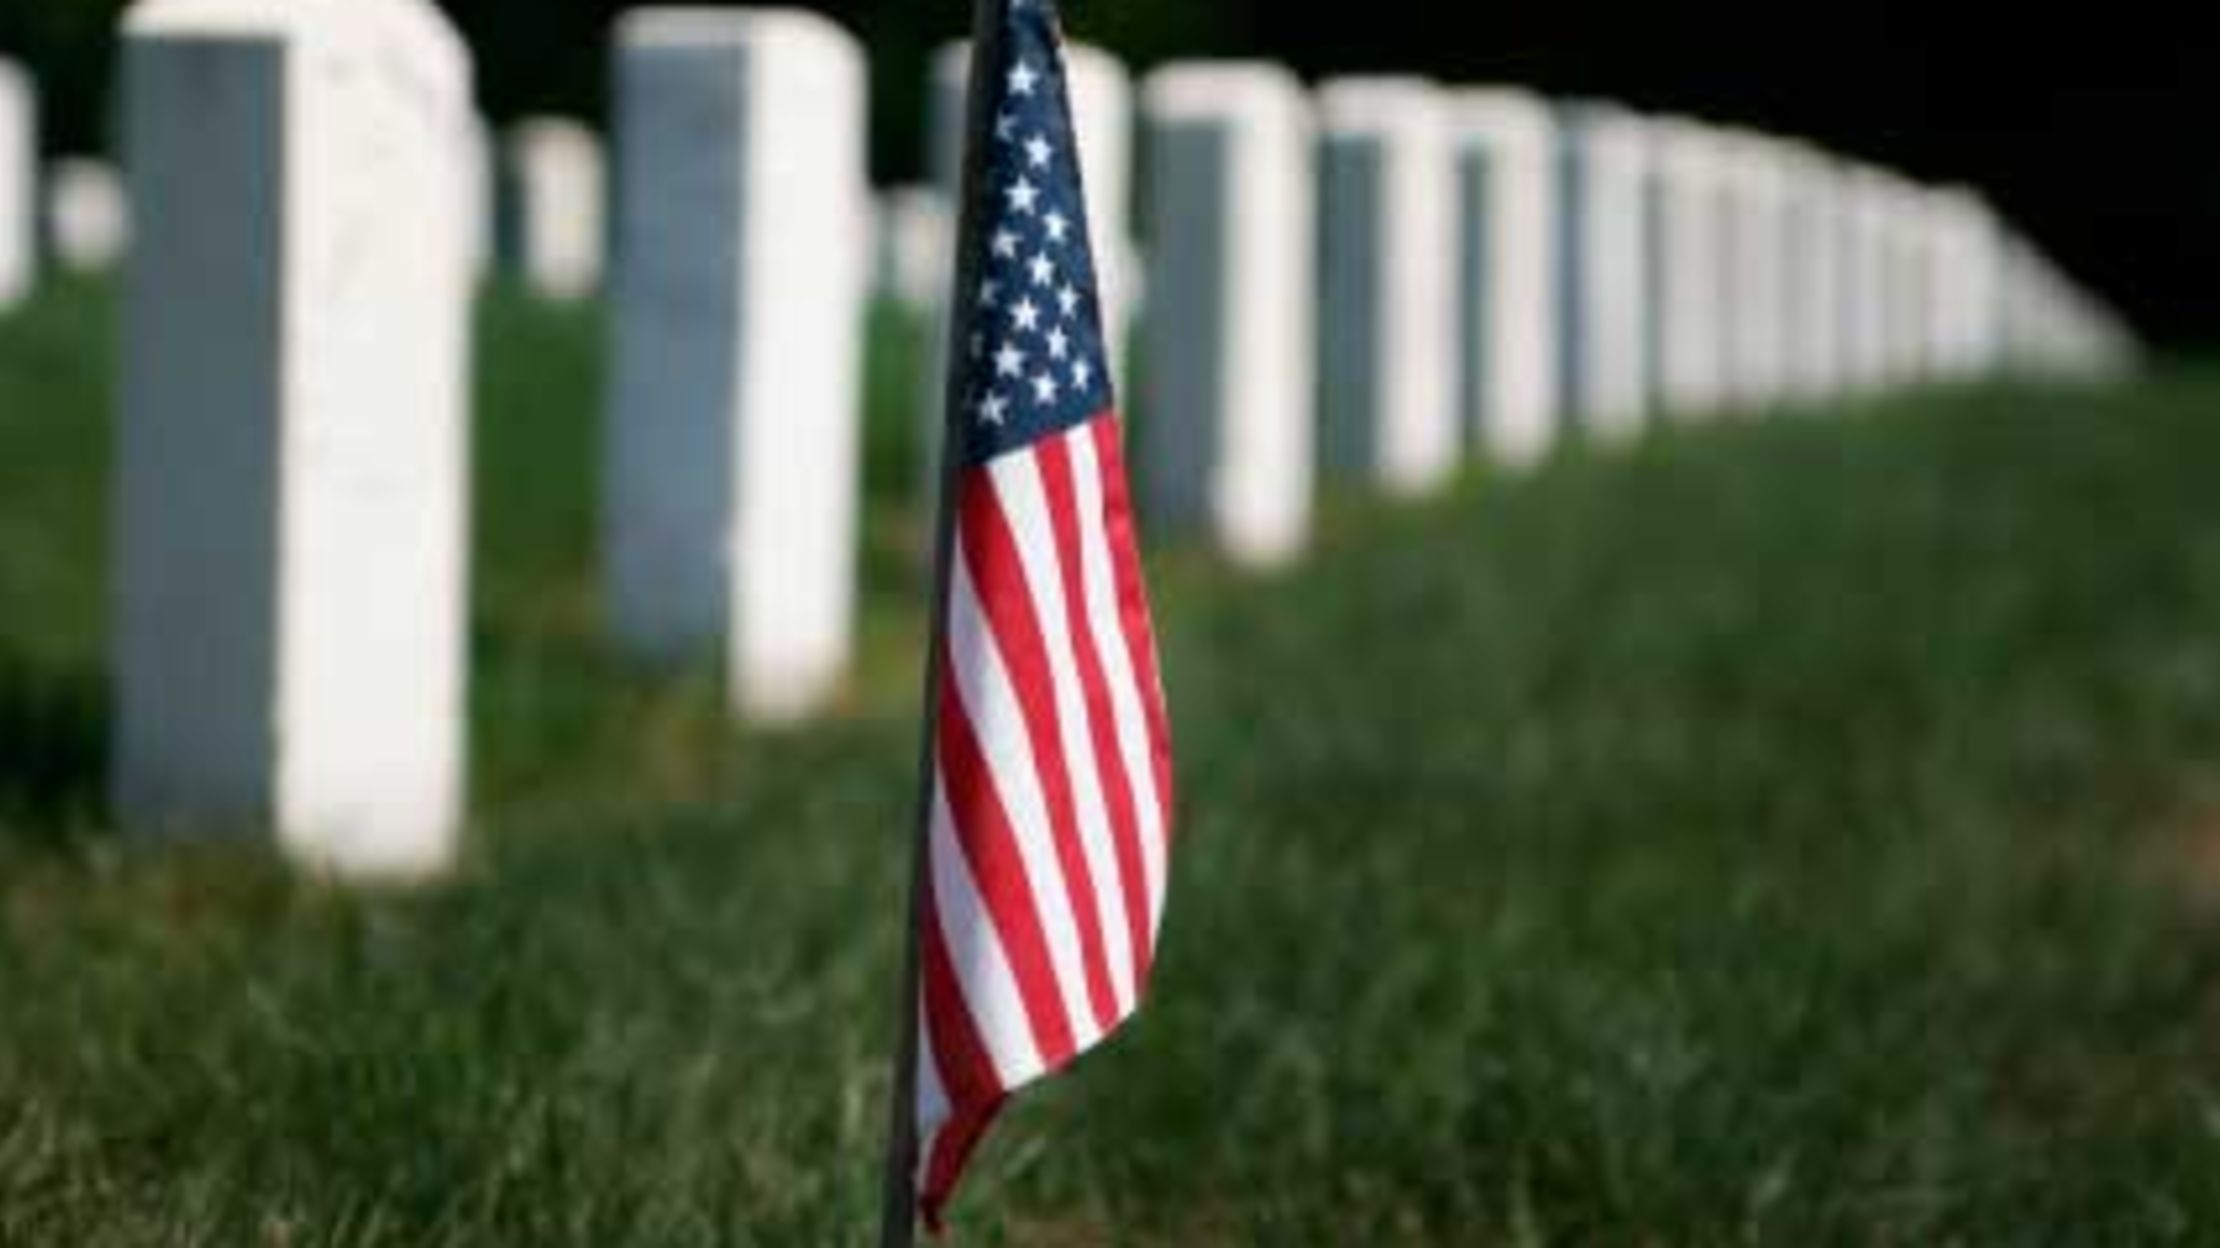 10 Things To Remember About Memorial Day Mental Floss